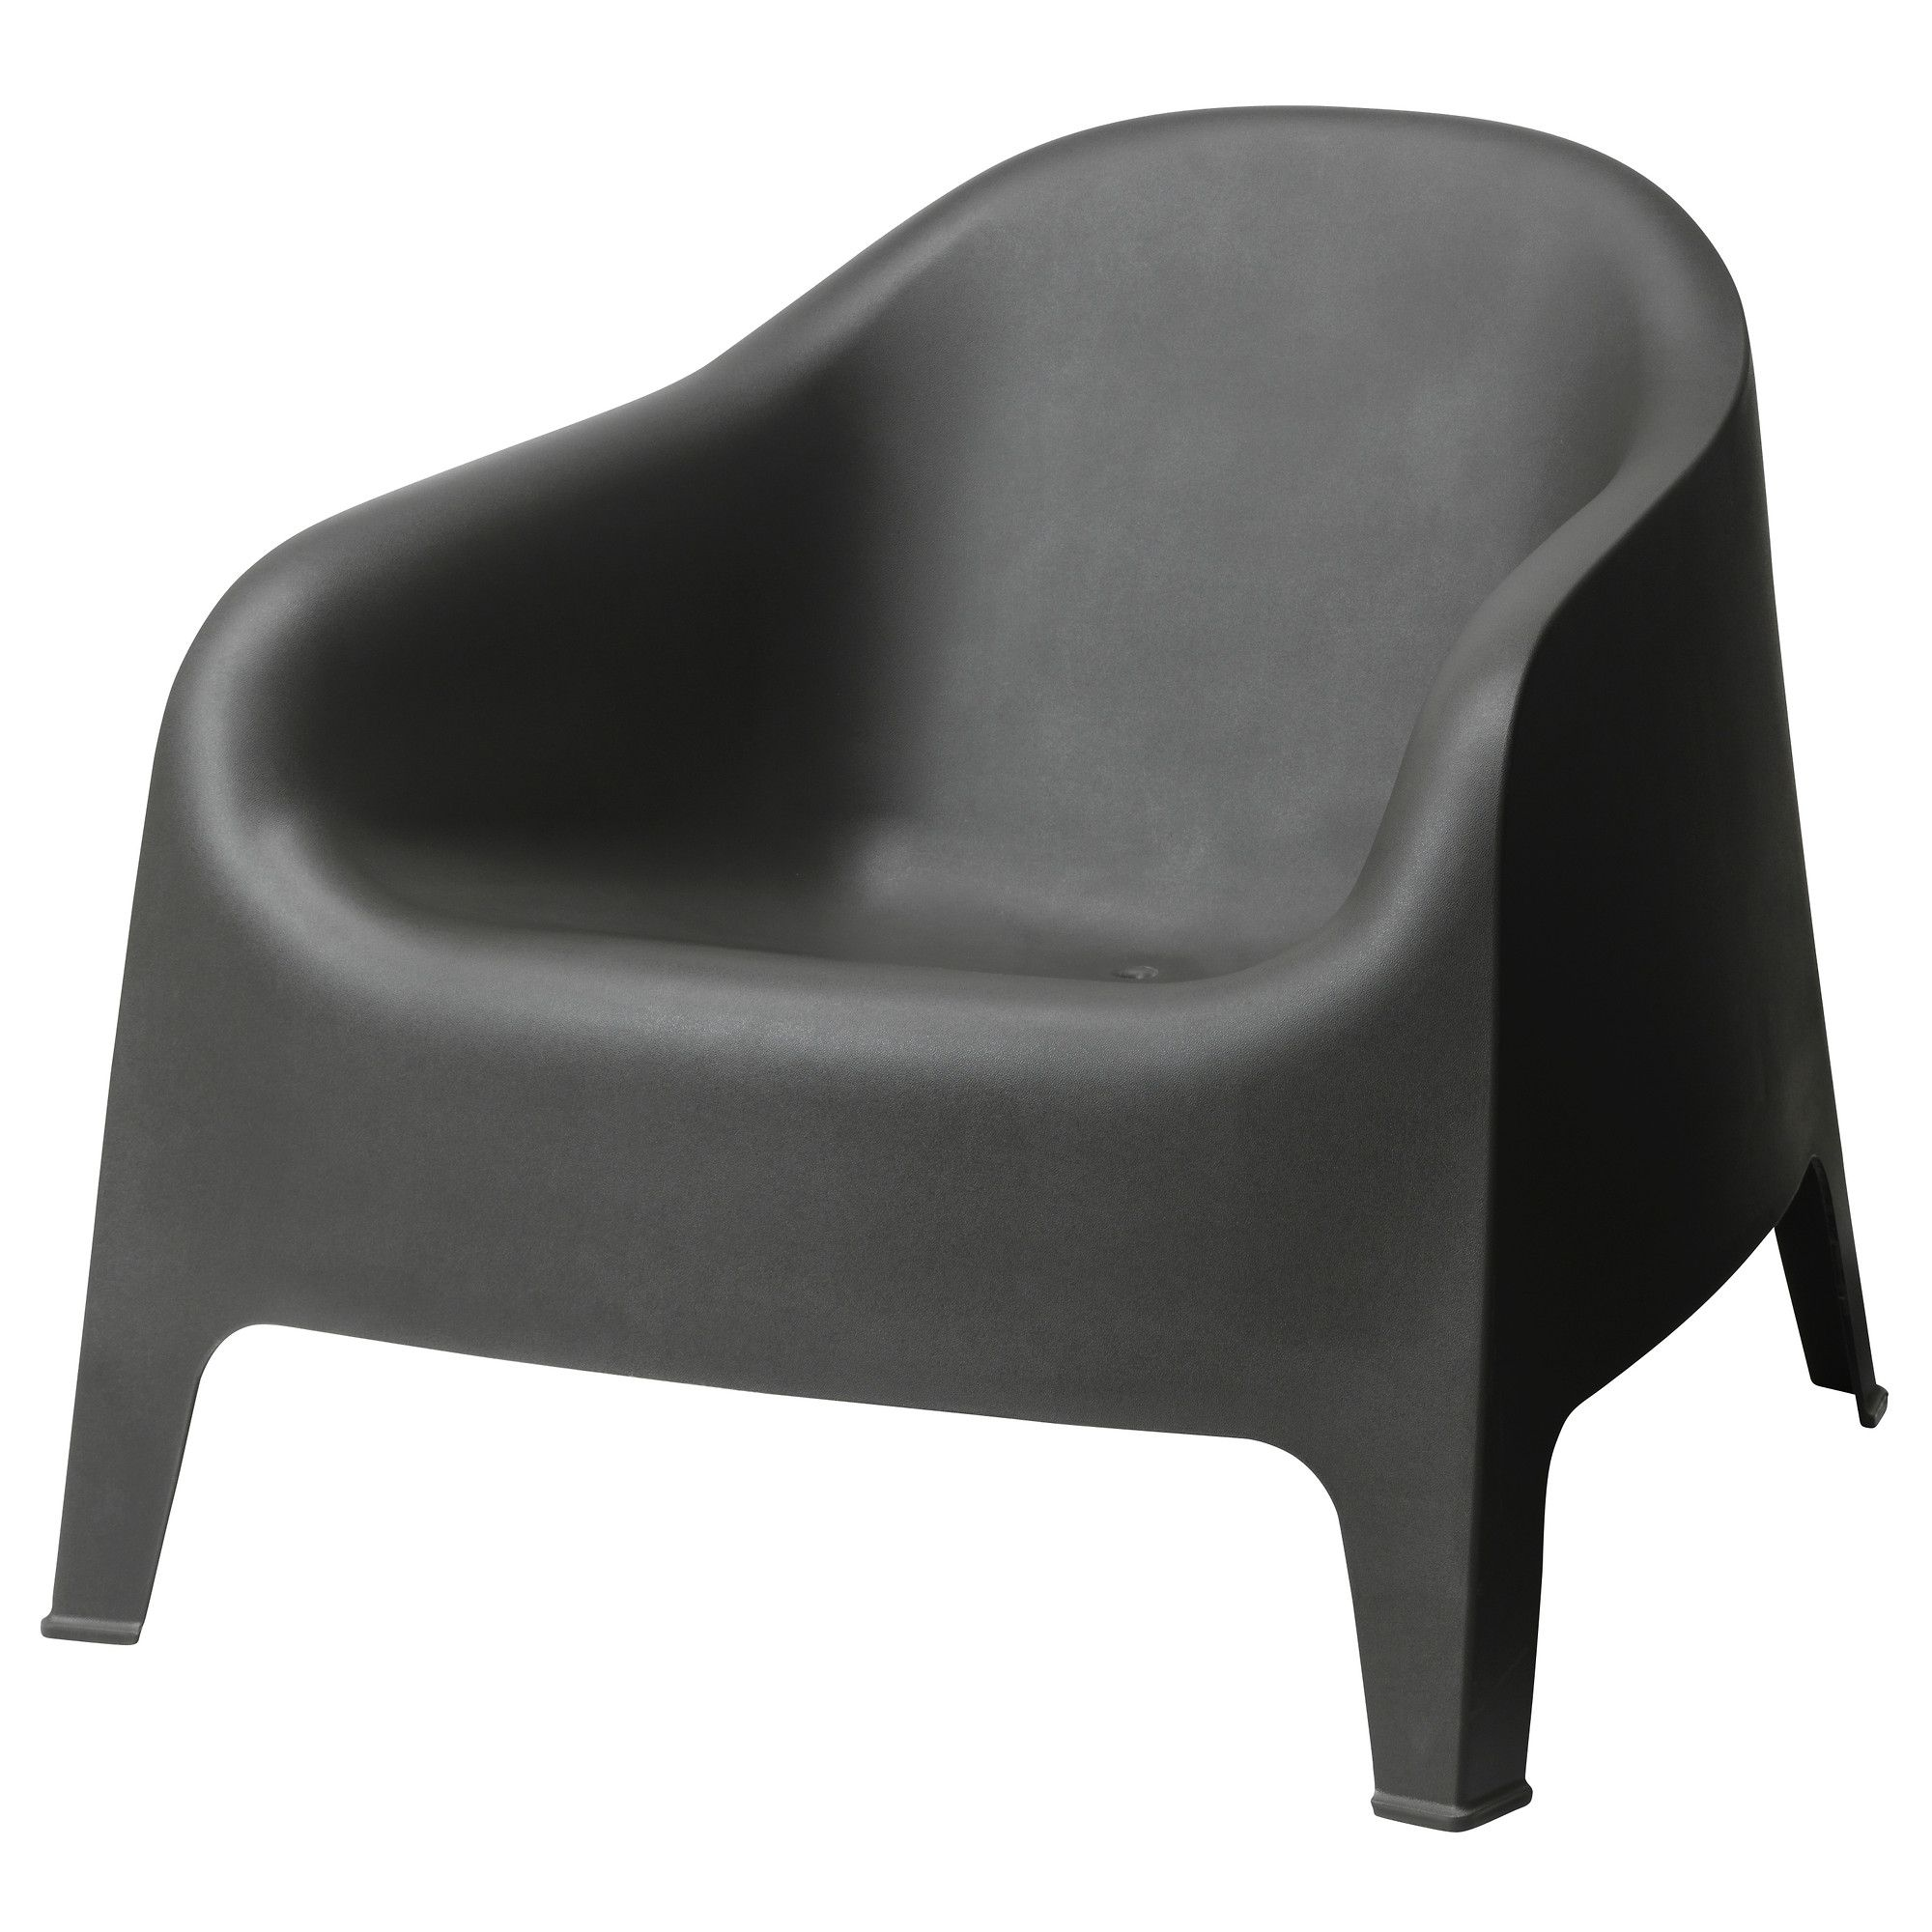 black furniture ikea. IKEA SKARP Armchair Outdoor Gray The Drain Hole In Black Furniture Ikea